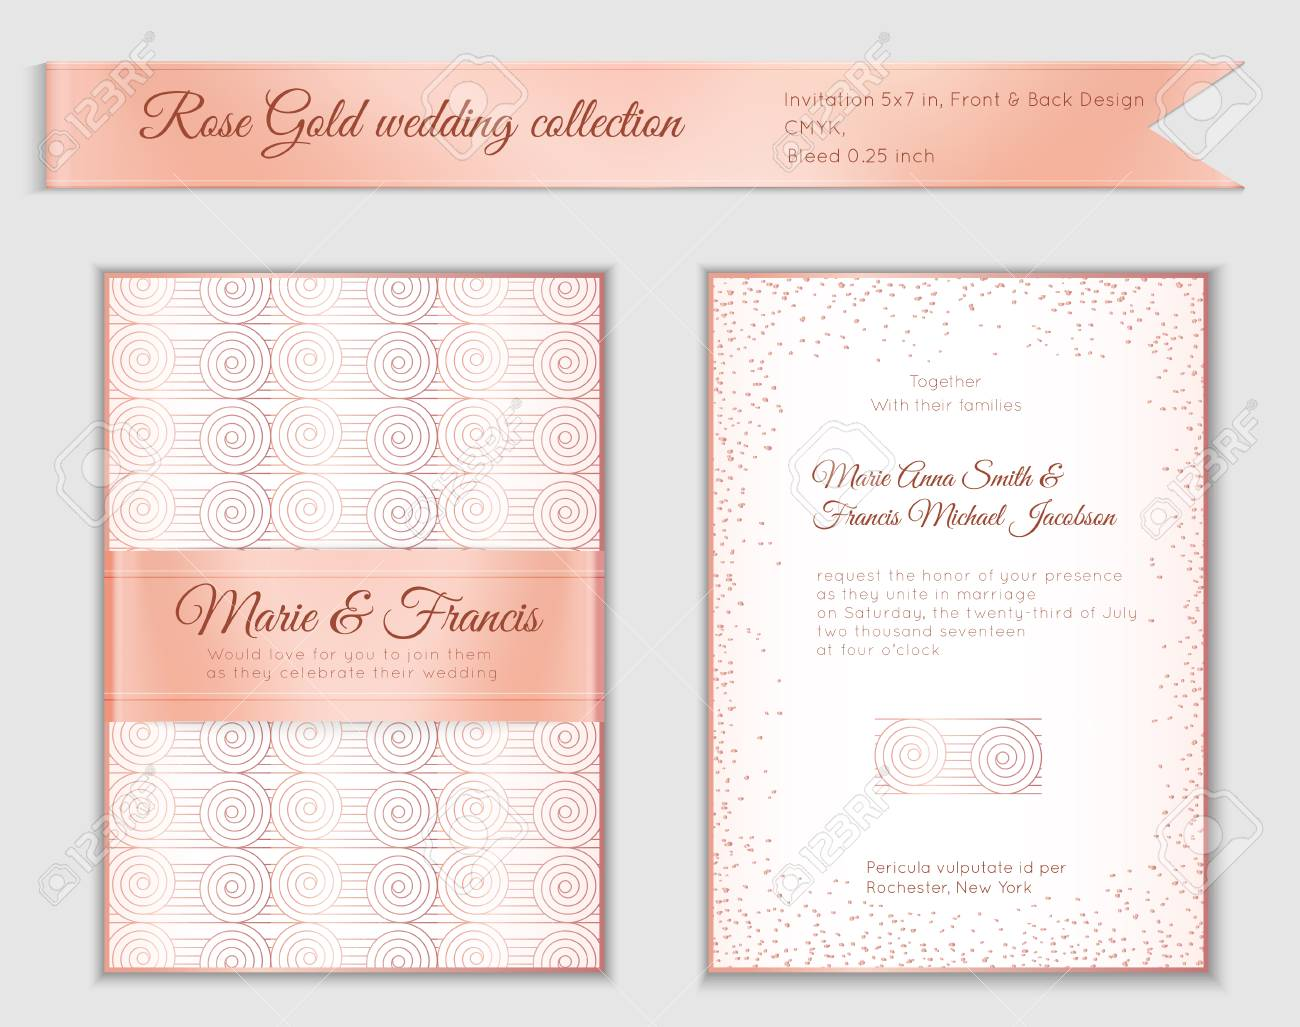 luxury wedding invitation template with rose gold shiny realistic